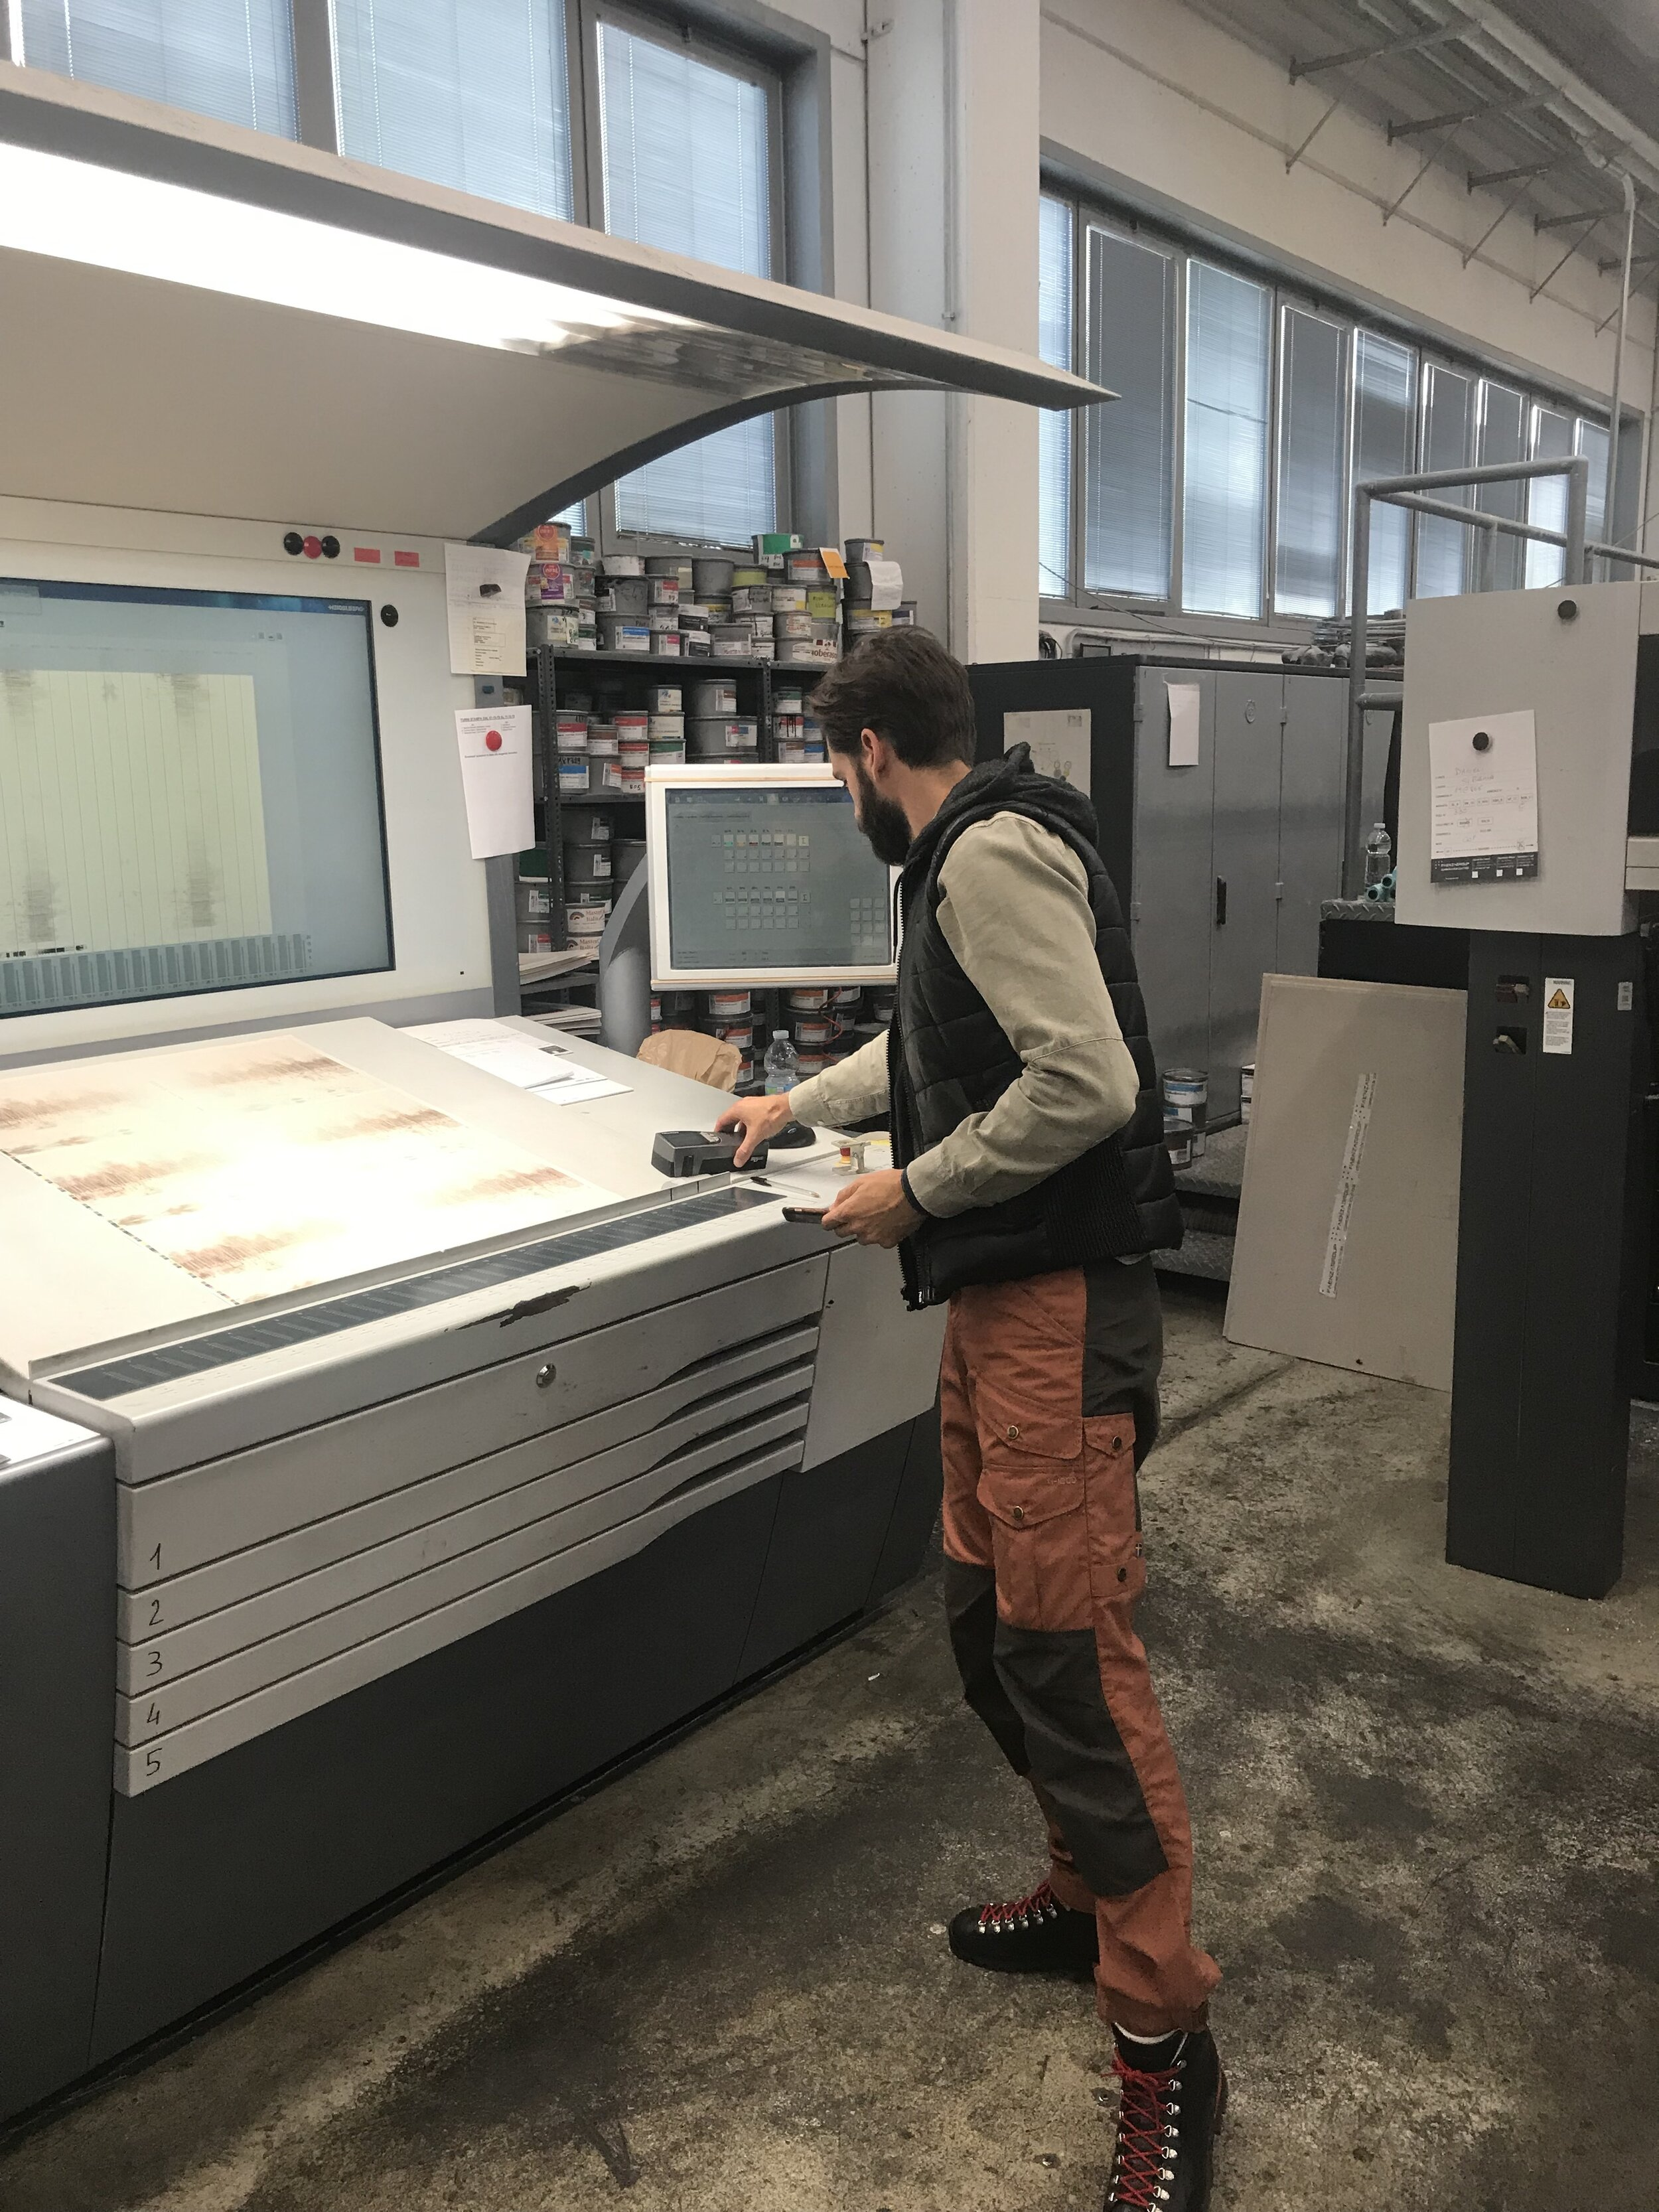 On press in Bologna, Italy to oversee printing of my book  SIBERIA , which will be published by Damiani, spring 2020